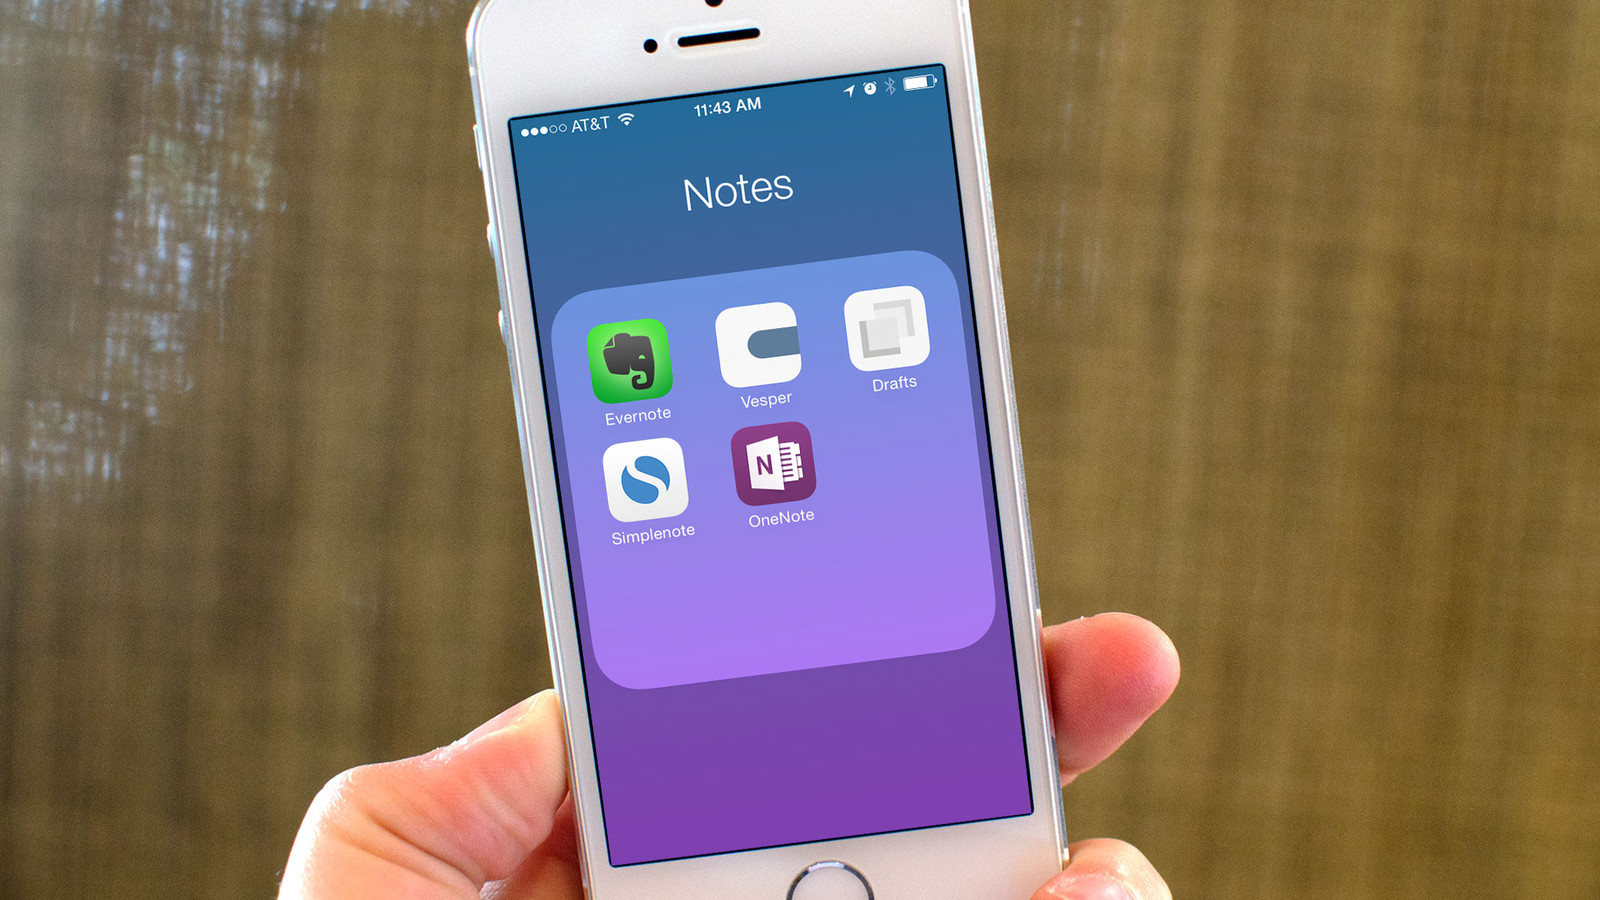 Best note-taking apps for iPhone and iPad: Evernote, Drafts, Vesper, and more!